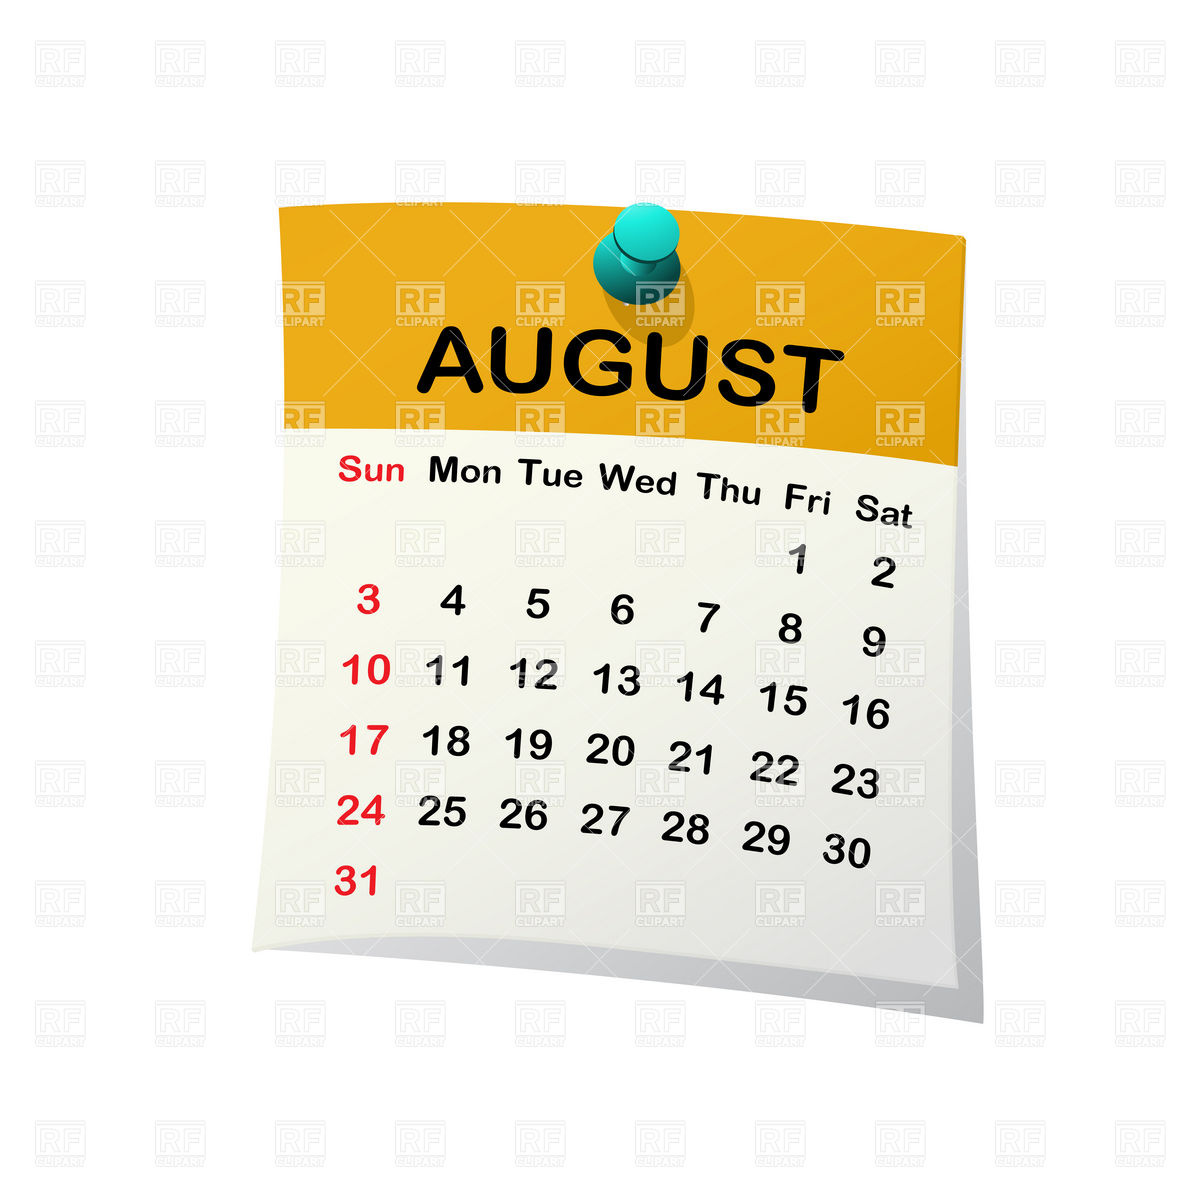 August 2013 calendar clipart clipart transparent download August Calendar Clipart - Clipart Kid clipart transparent download